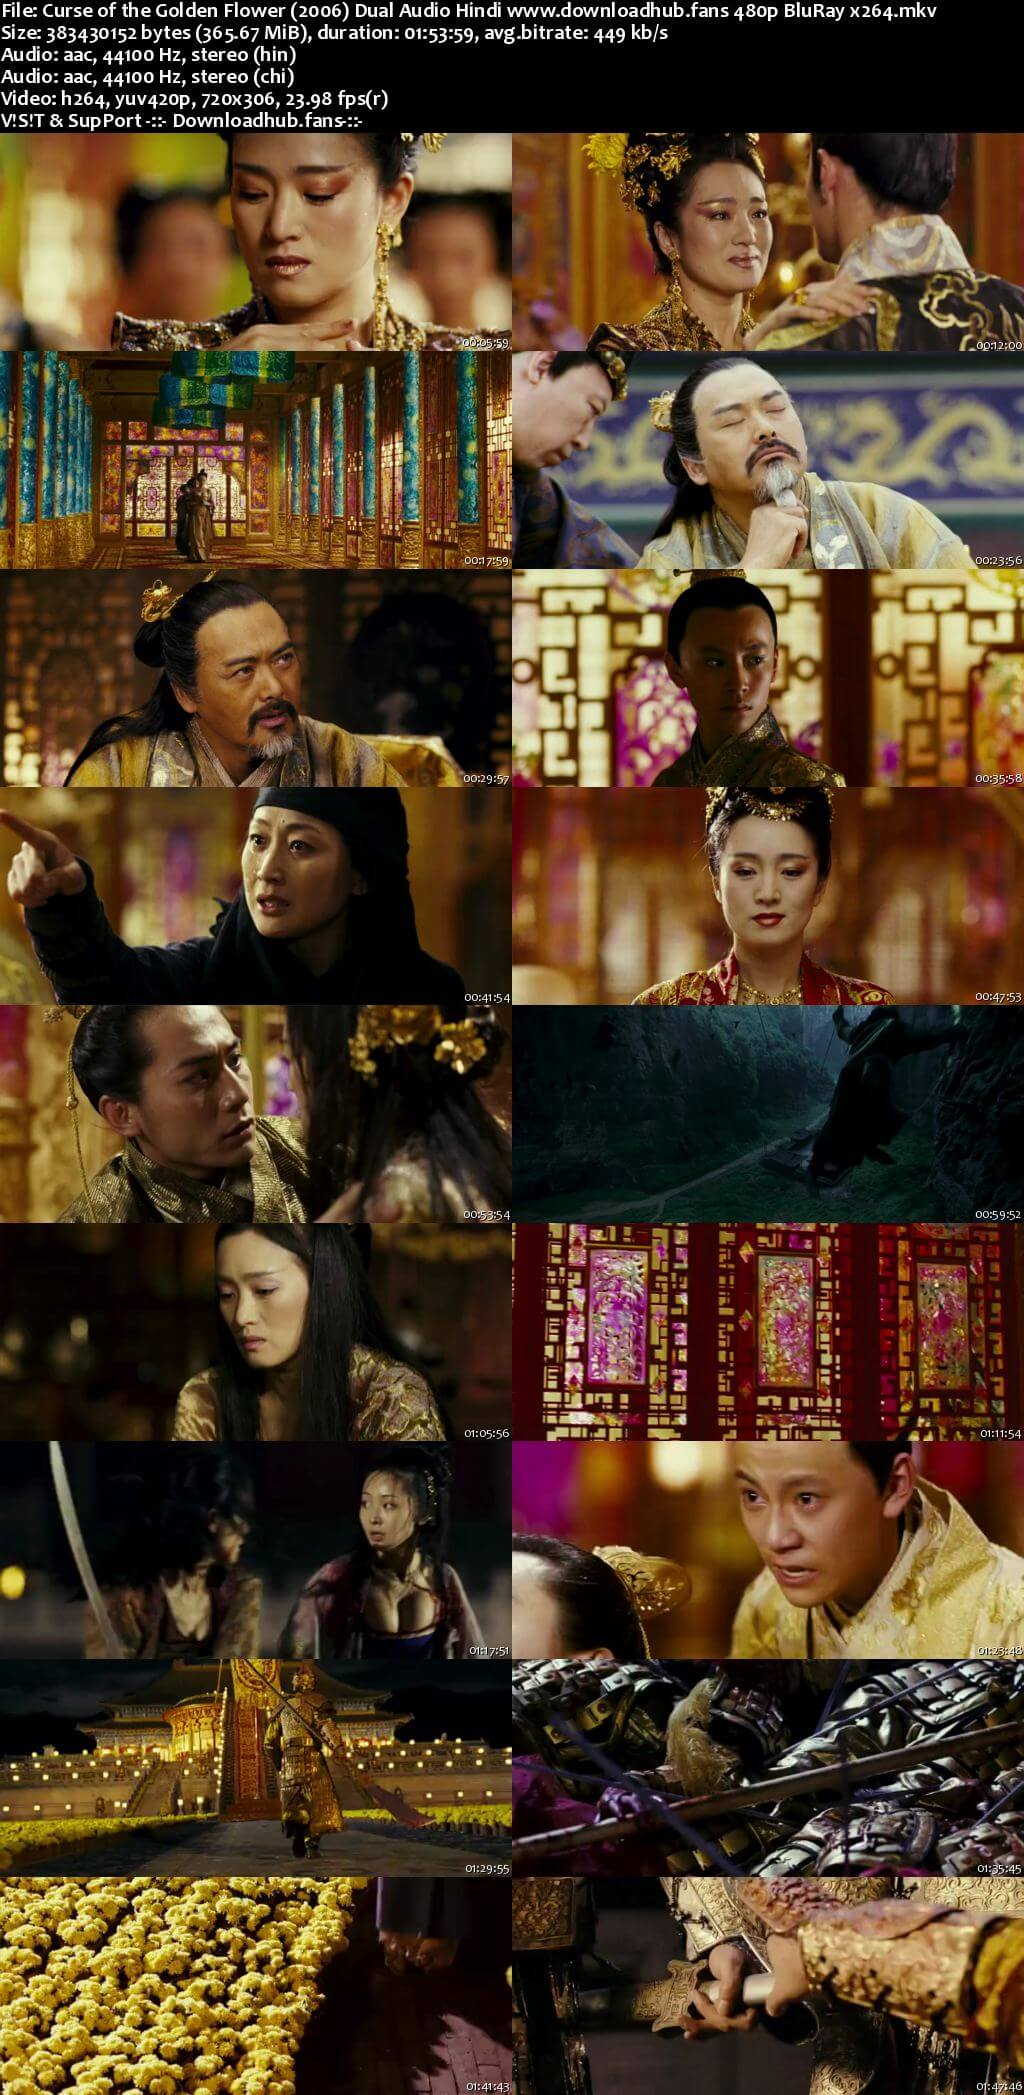 Curse of the Golden Flower 2006 Hindi Dual Audio 350MB BluRay 480p